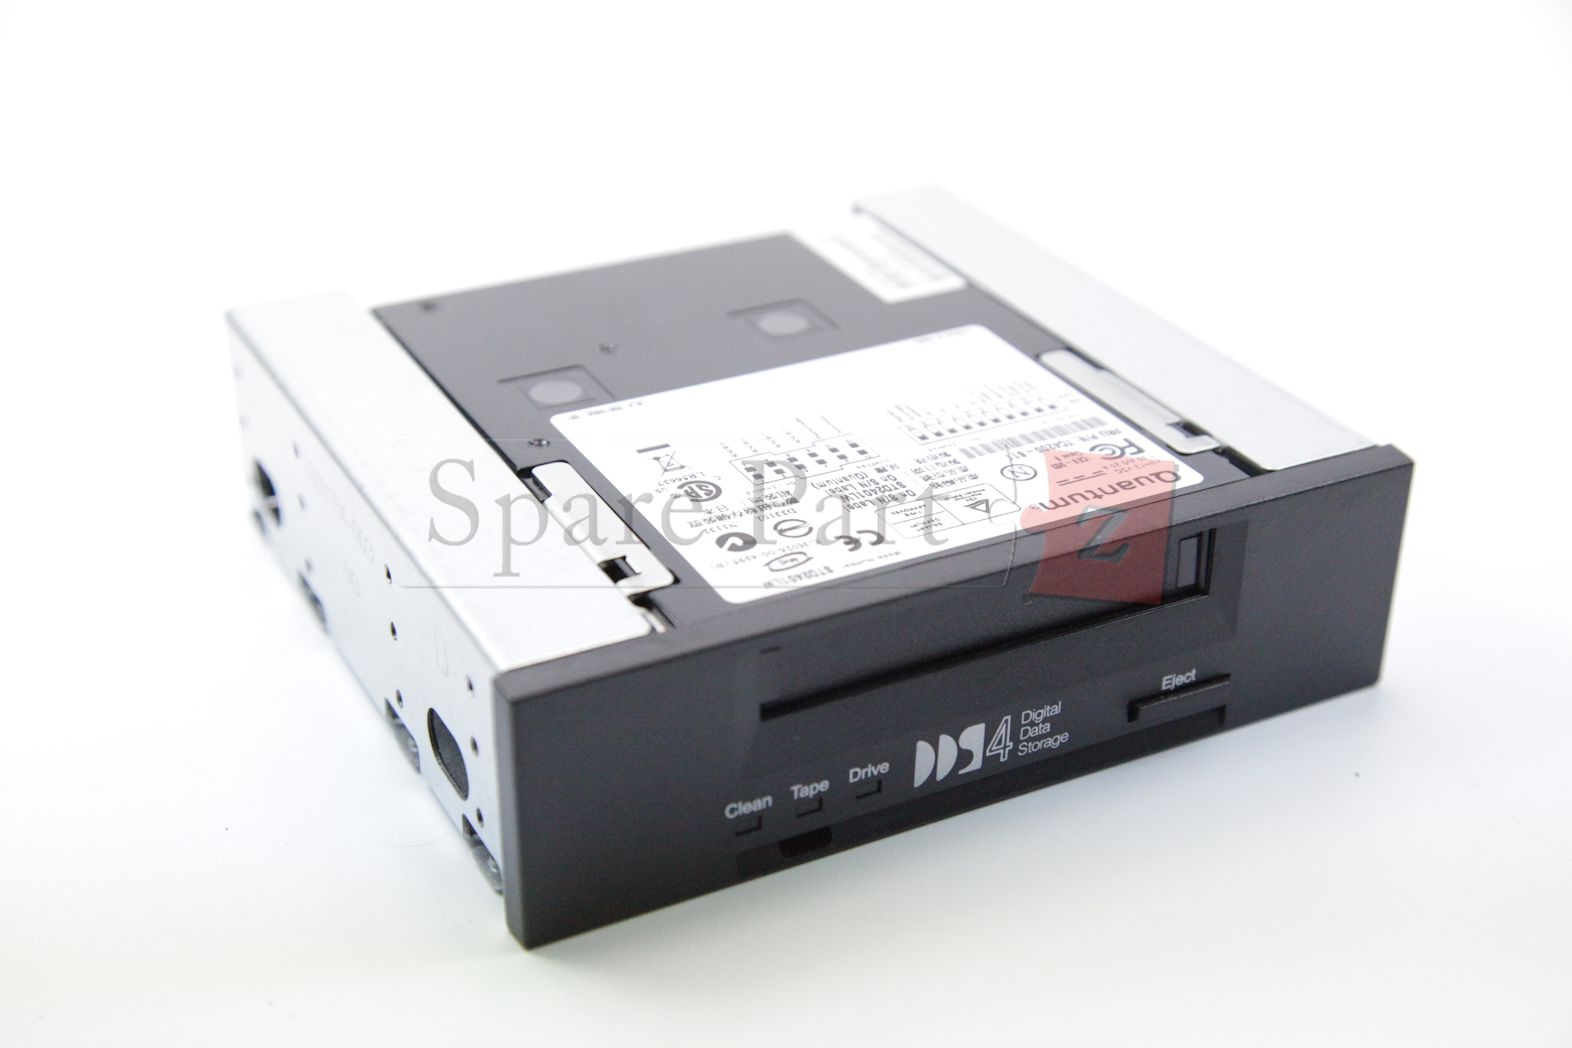 DELL DDS-4 DAT Tape Backup Unit 20/40GB STD2401LW 08U502